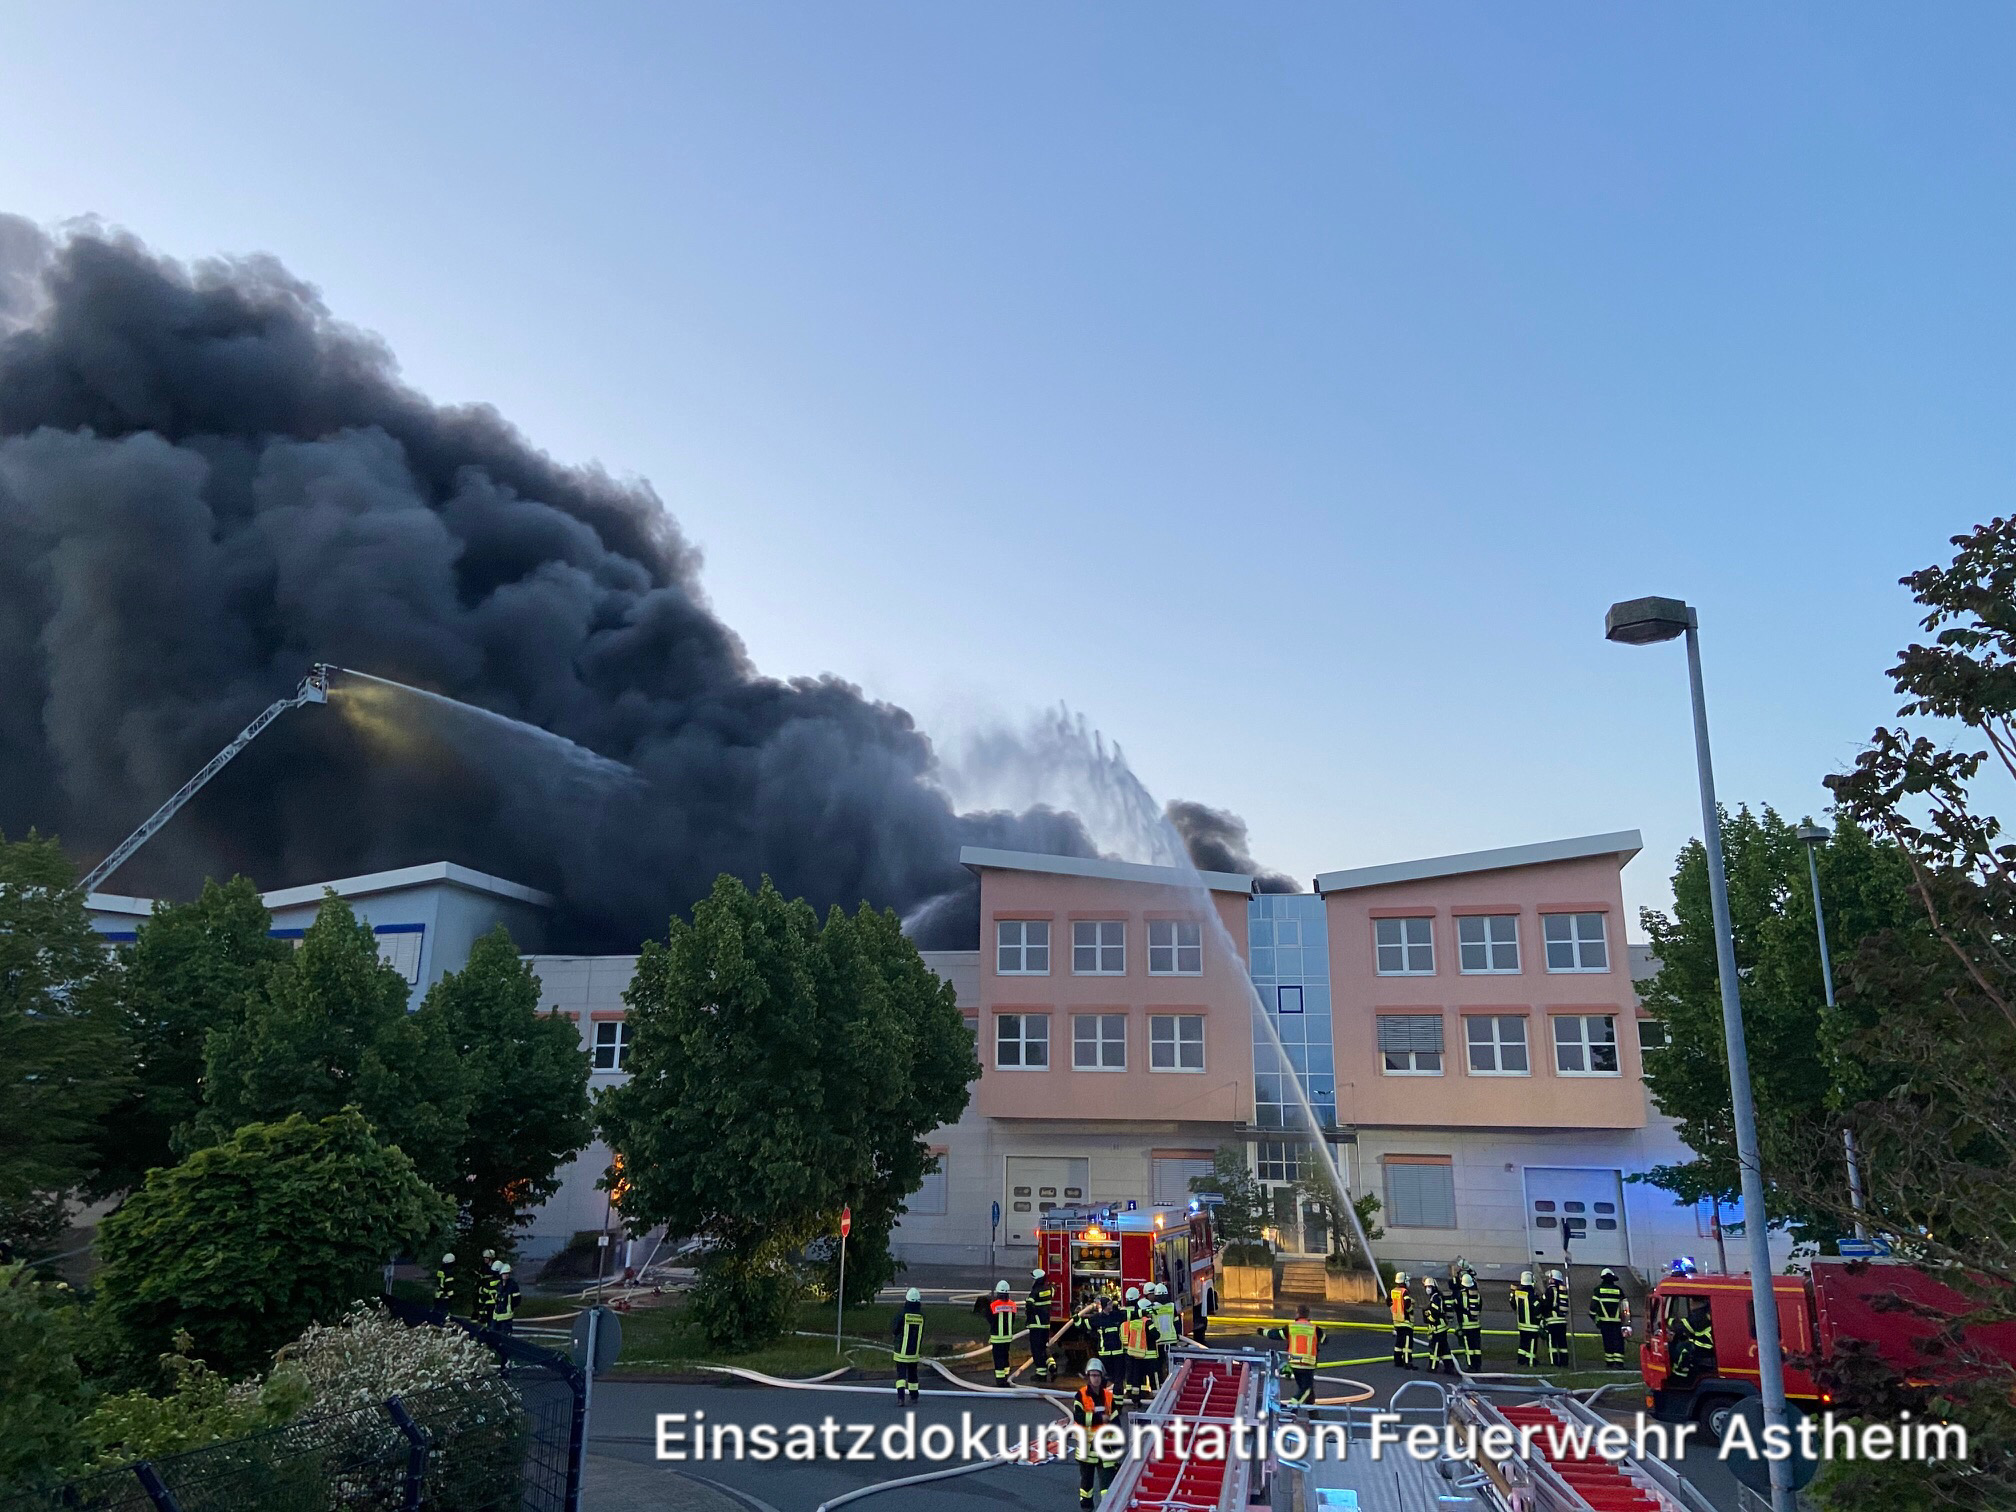 Lagerhalle in Vollbrand